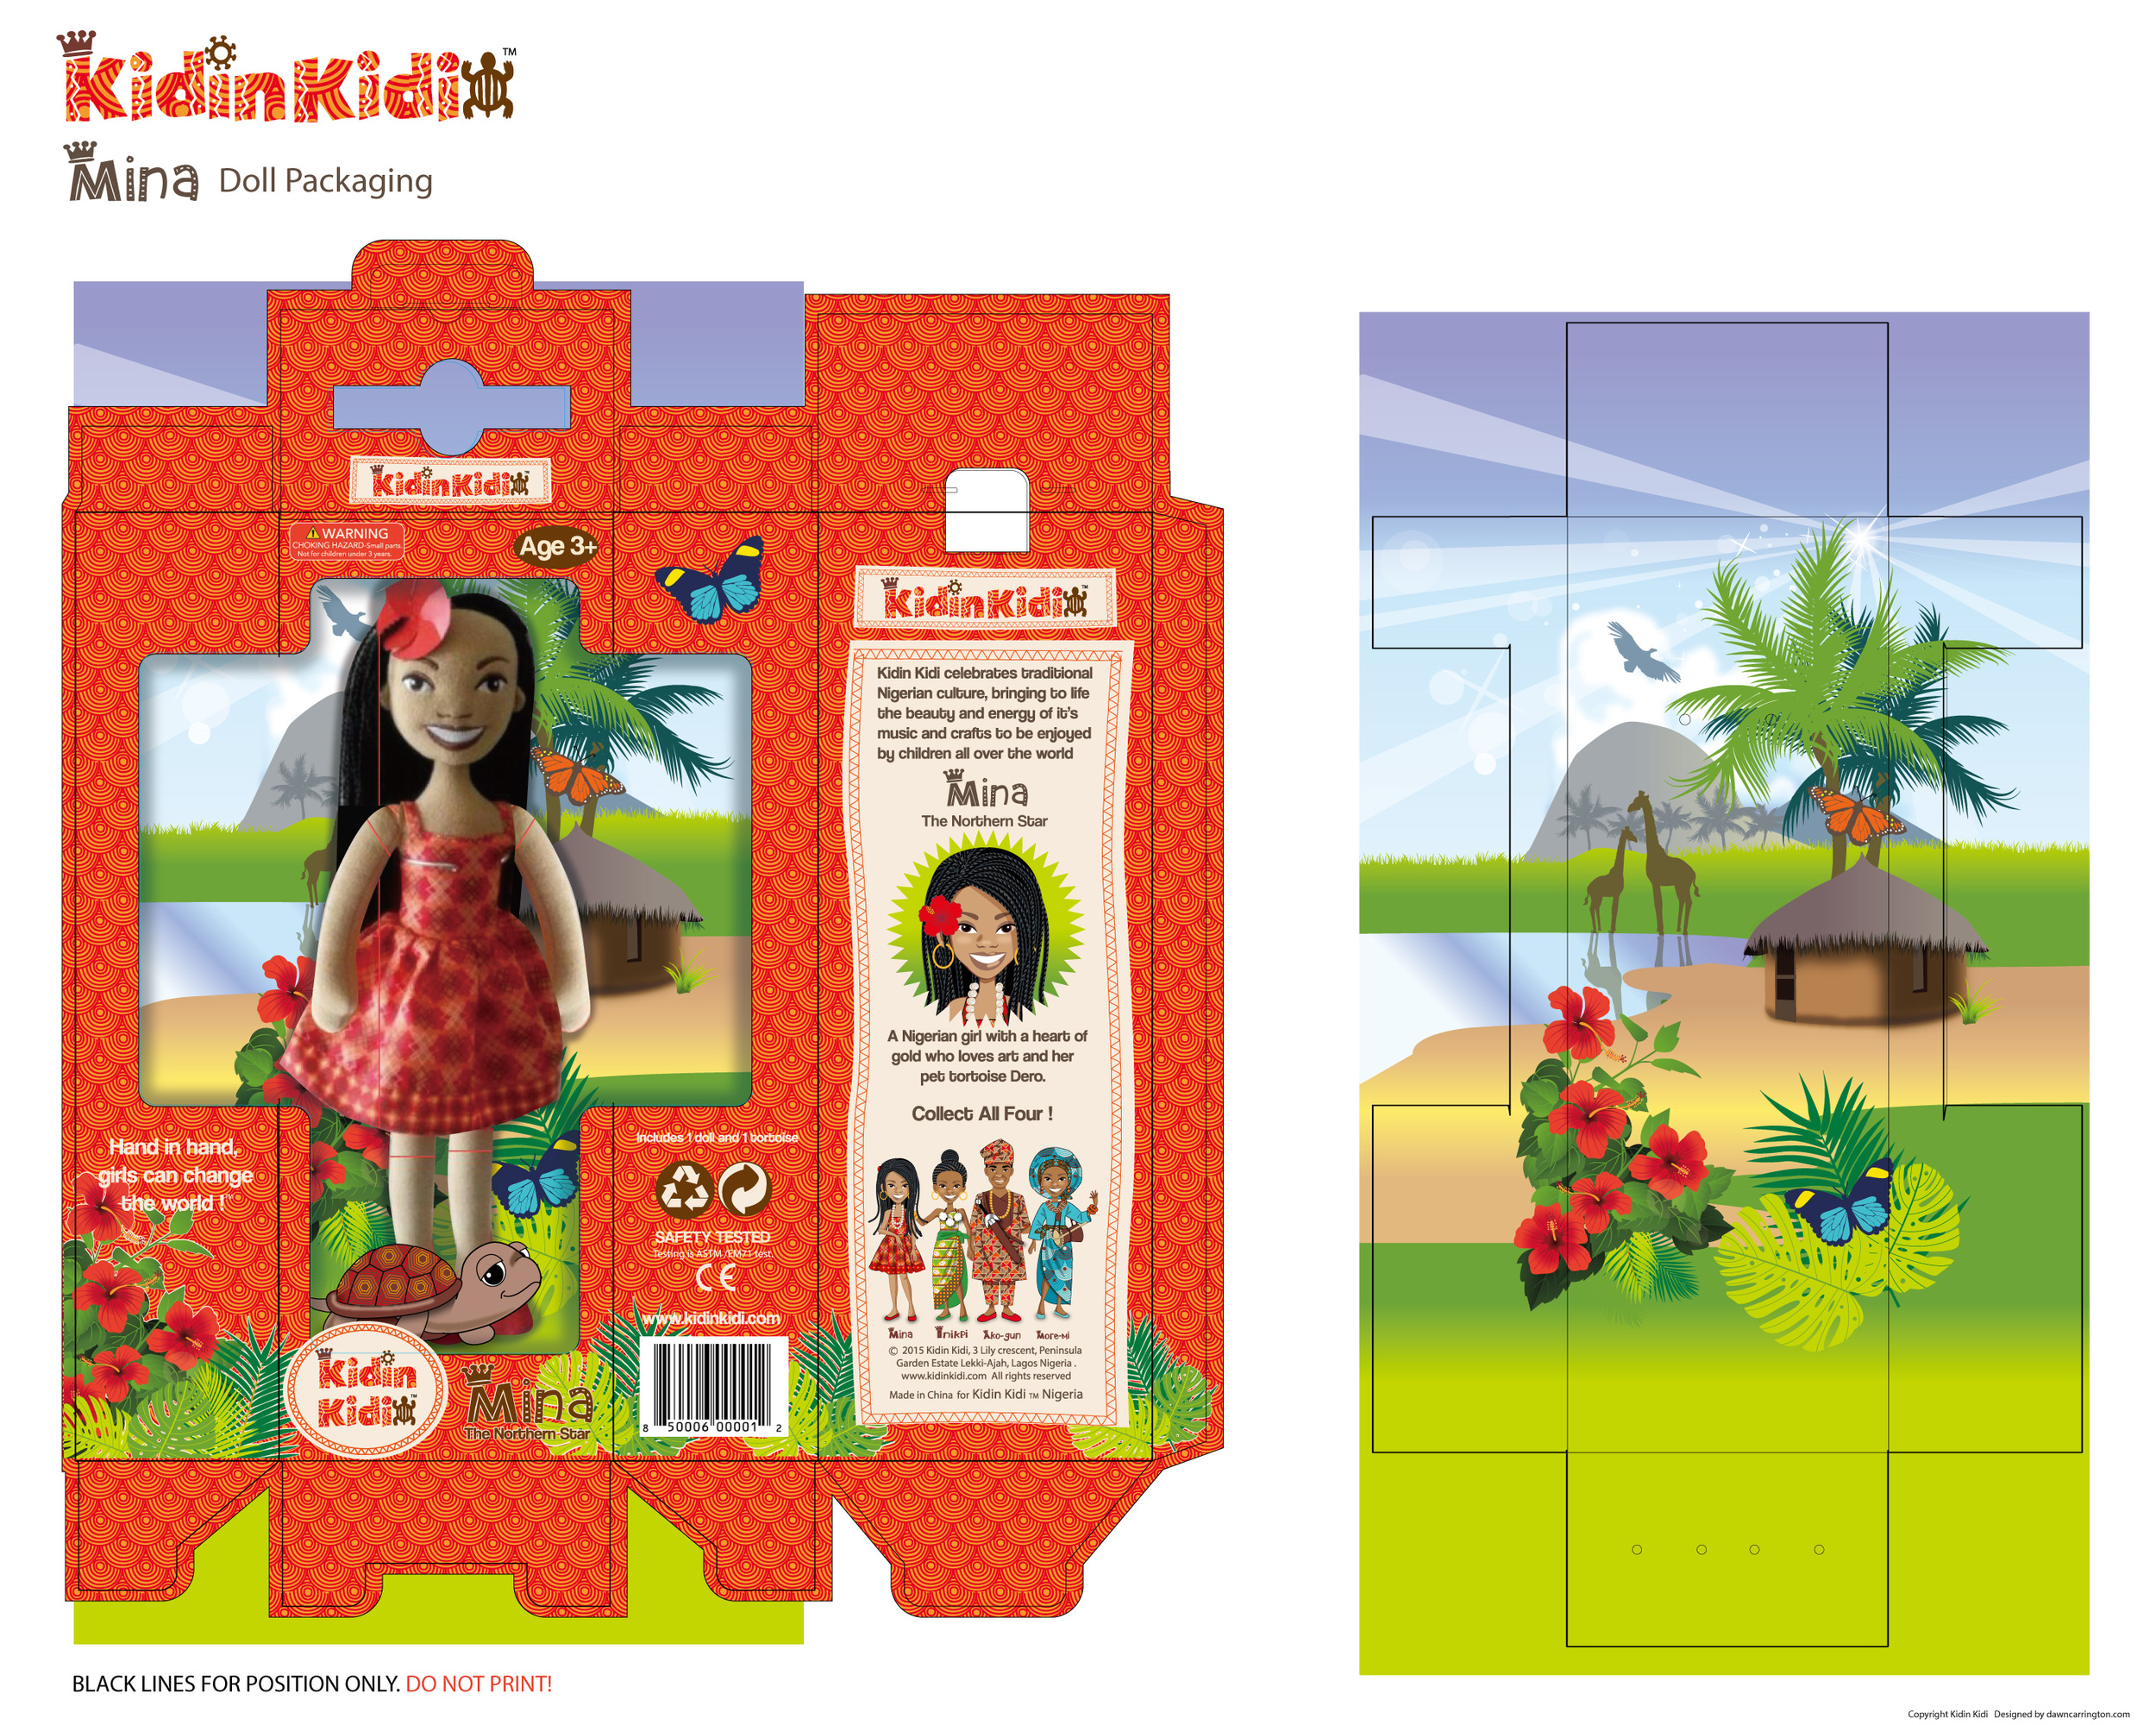 Mina-Doll-Packaging.jpg